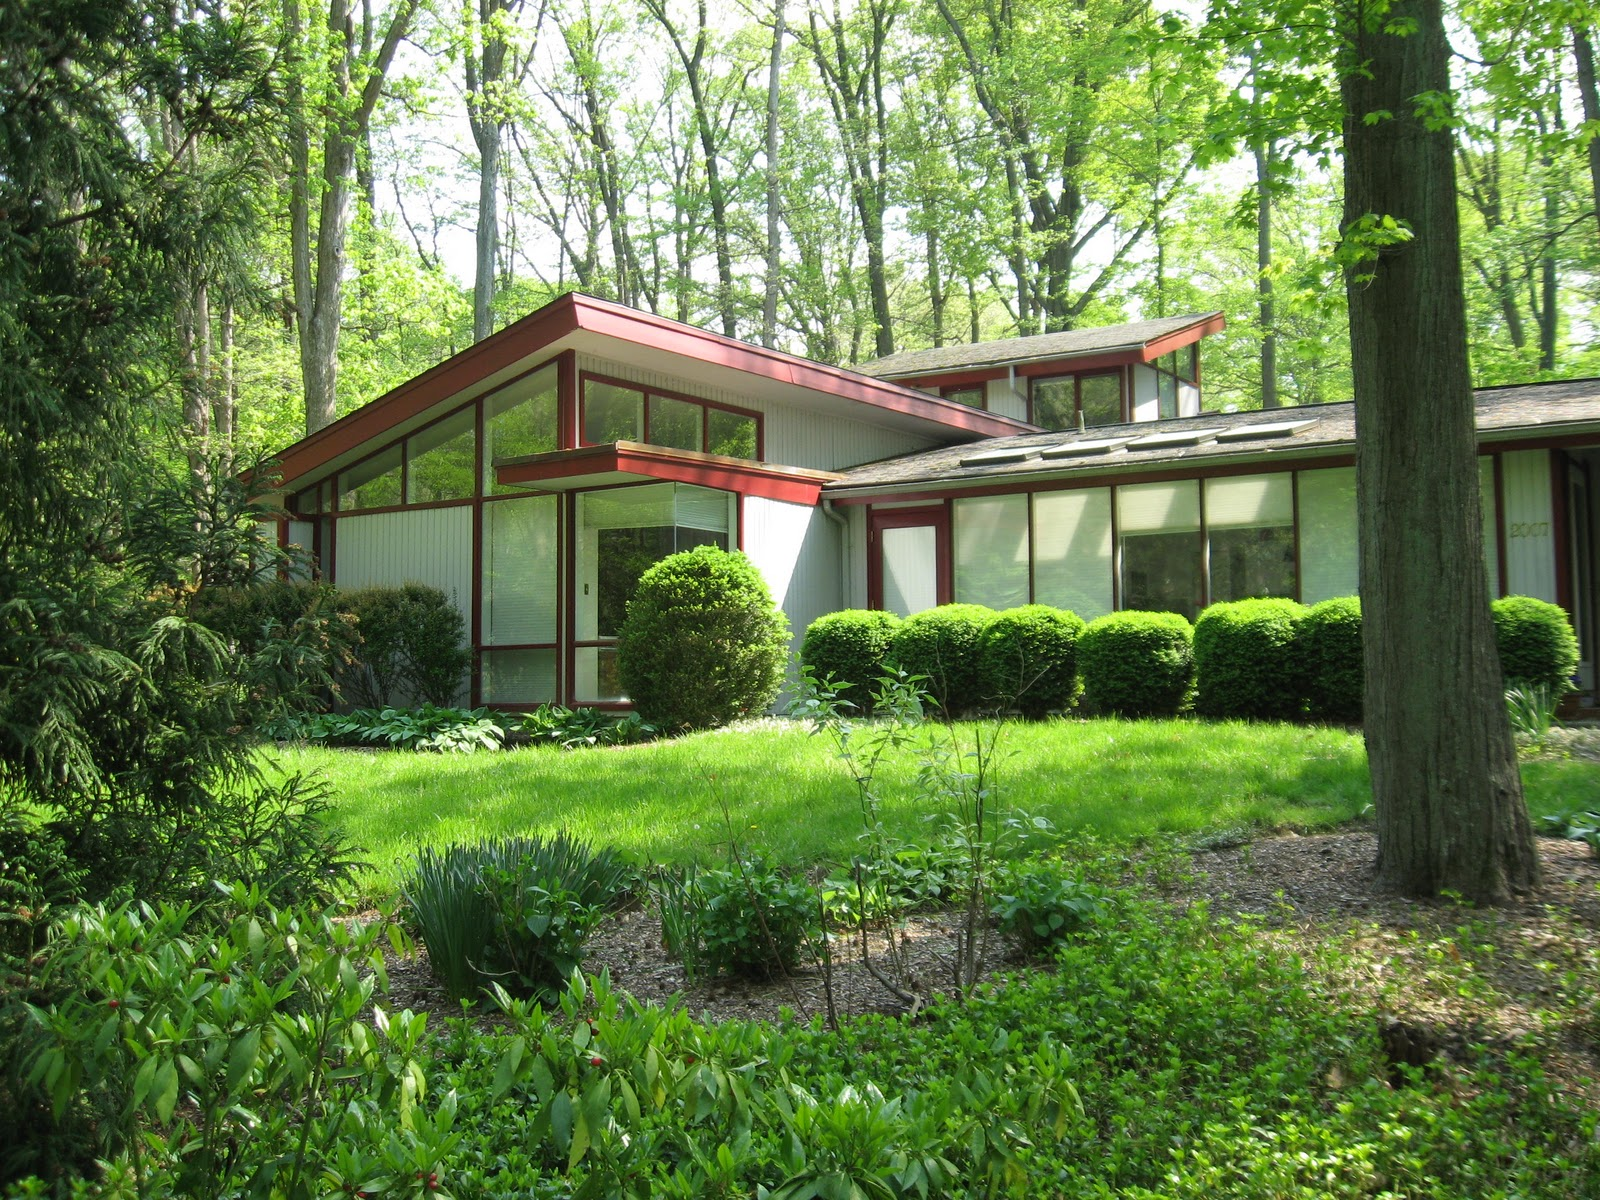 Braxton and yancey mid century modern homes for Small mid century modern home plans